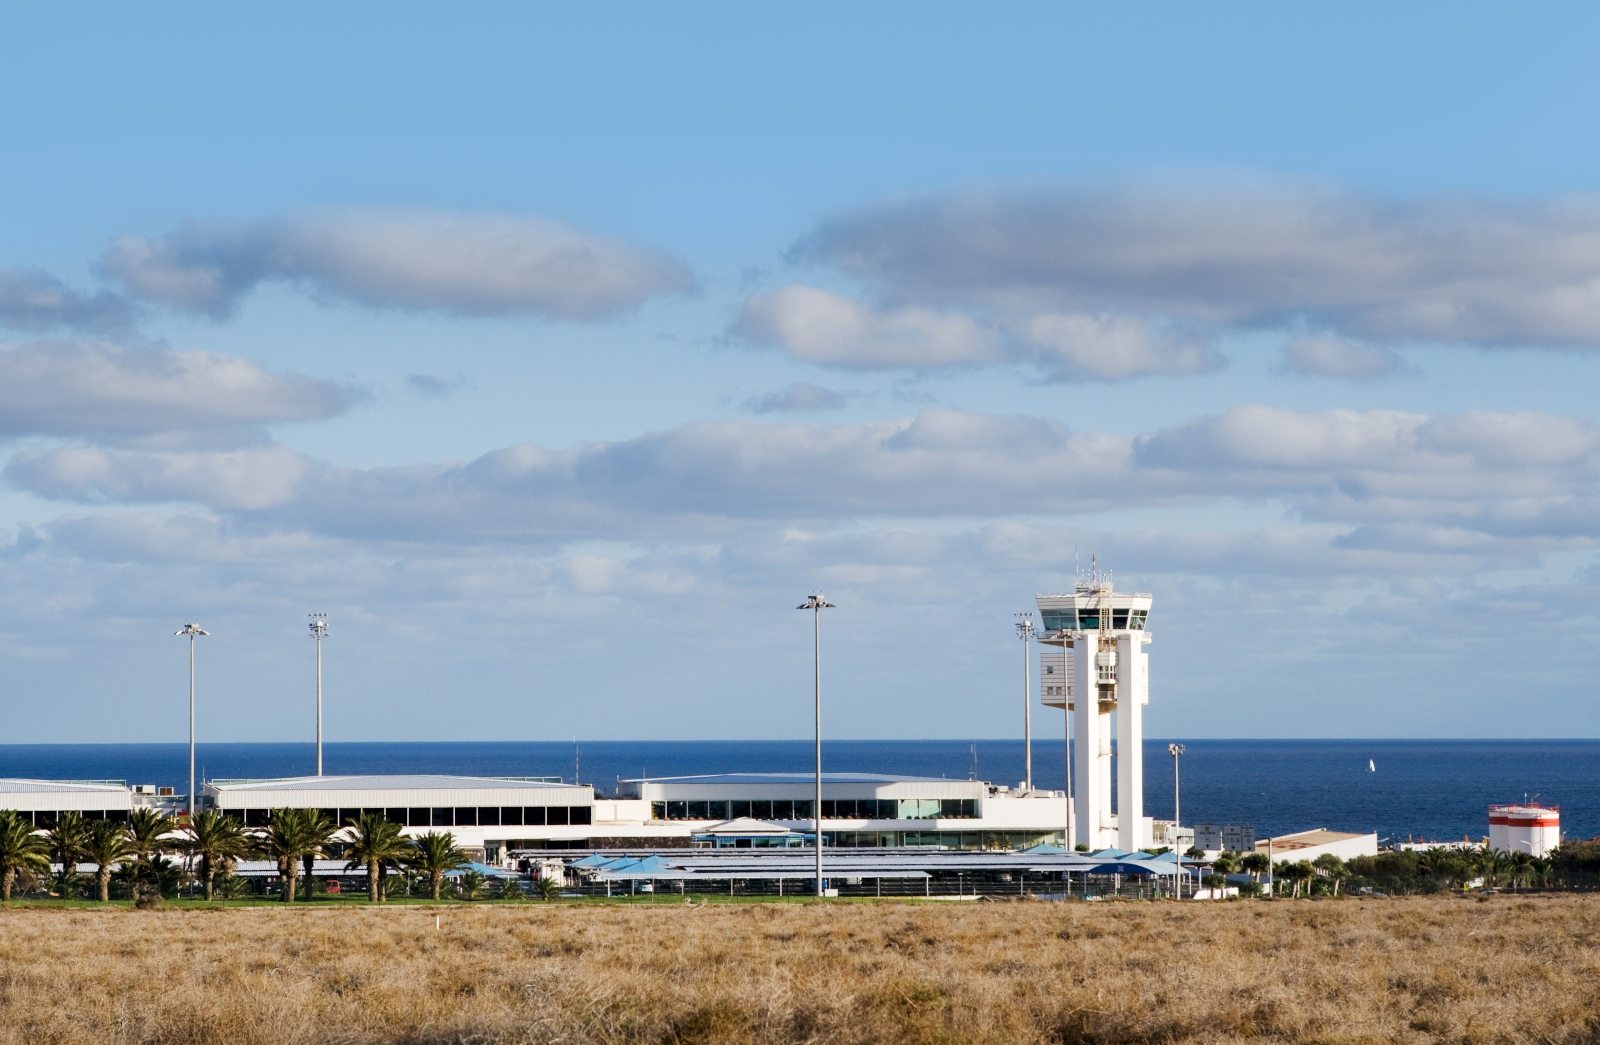 'airport Lanzarote with traffic control center, Spain' - Lanzarote